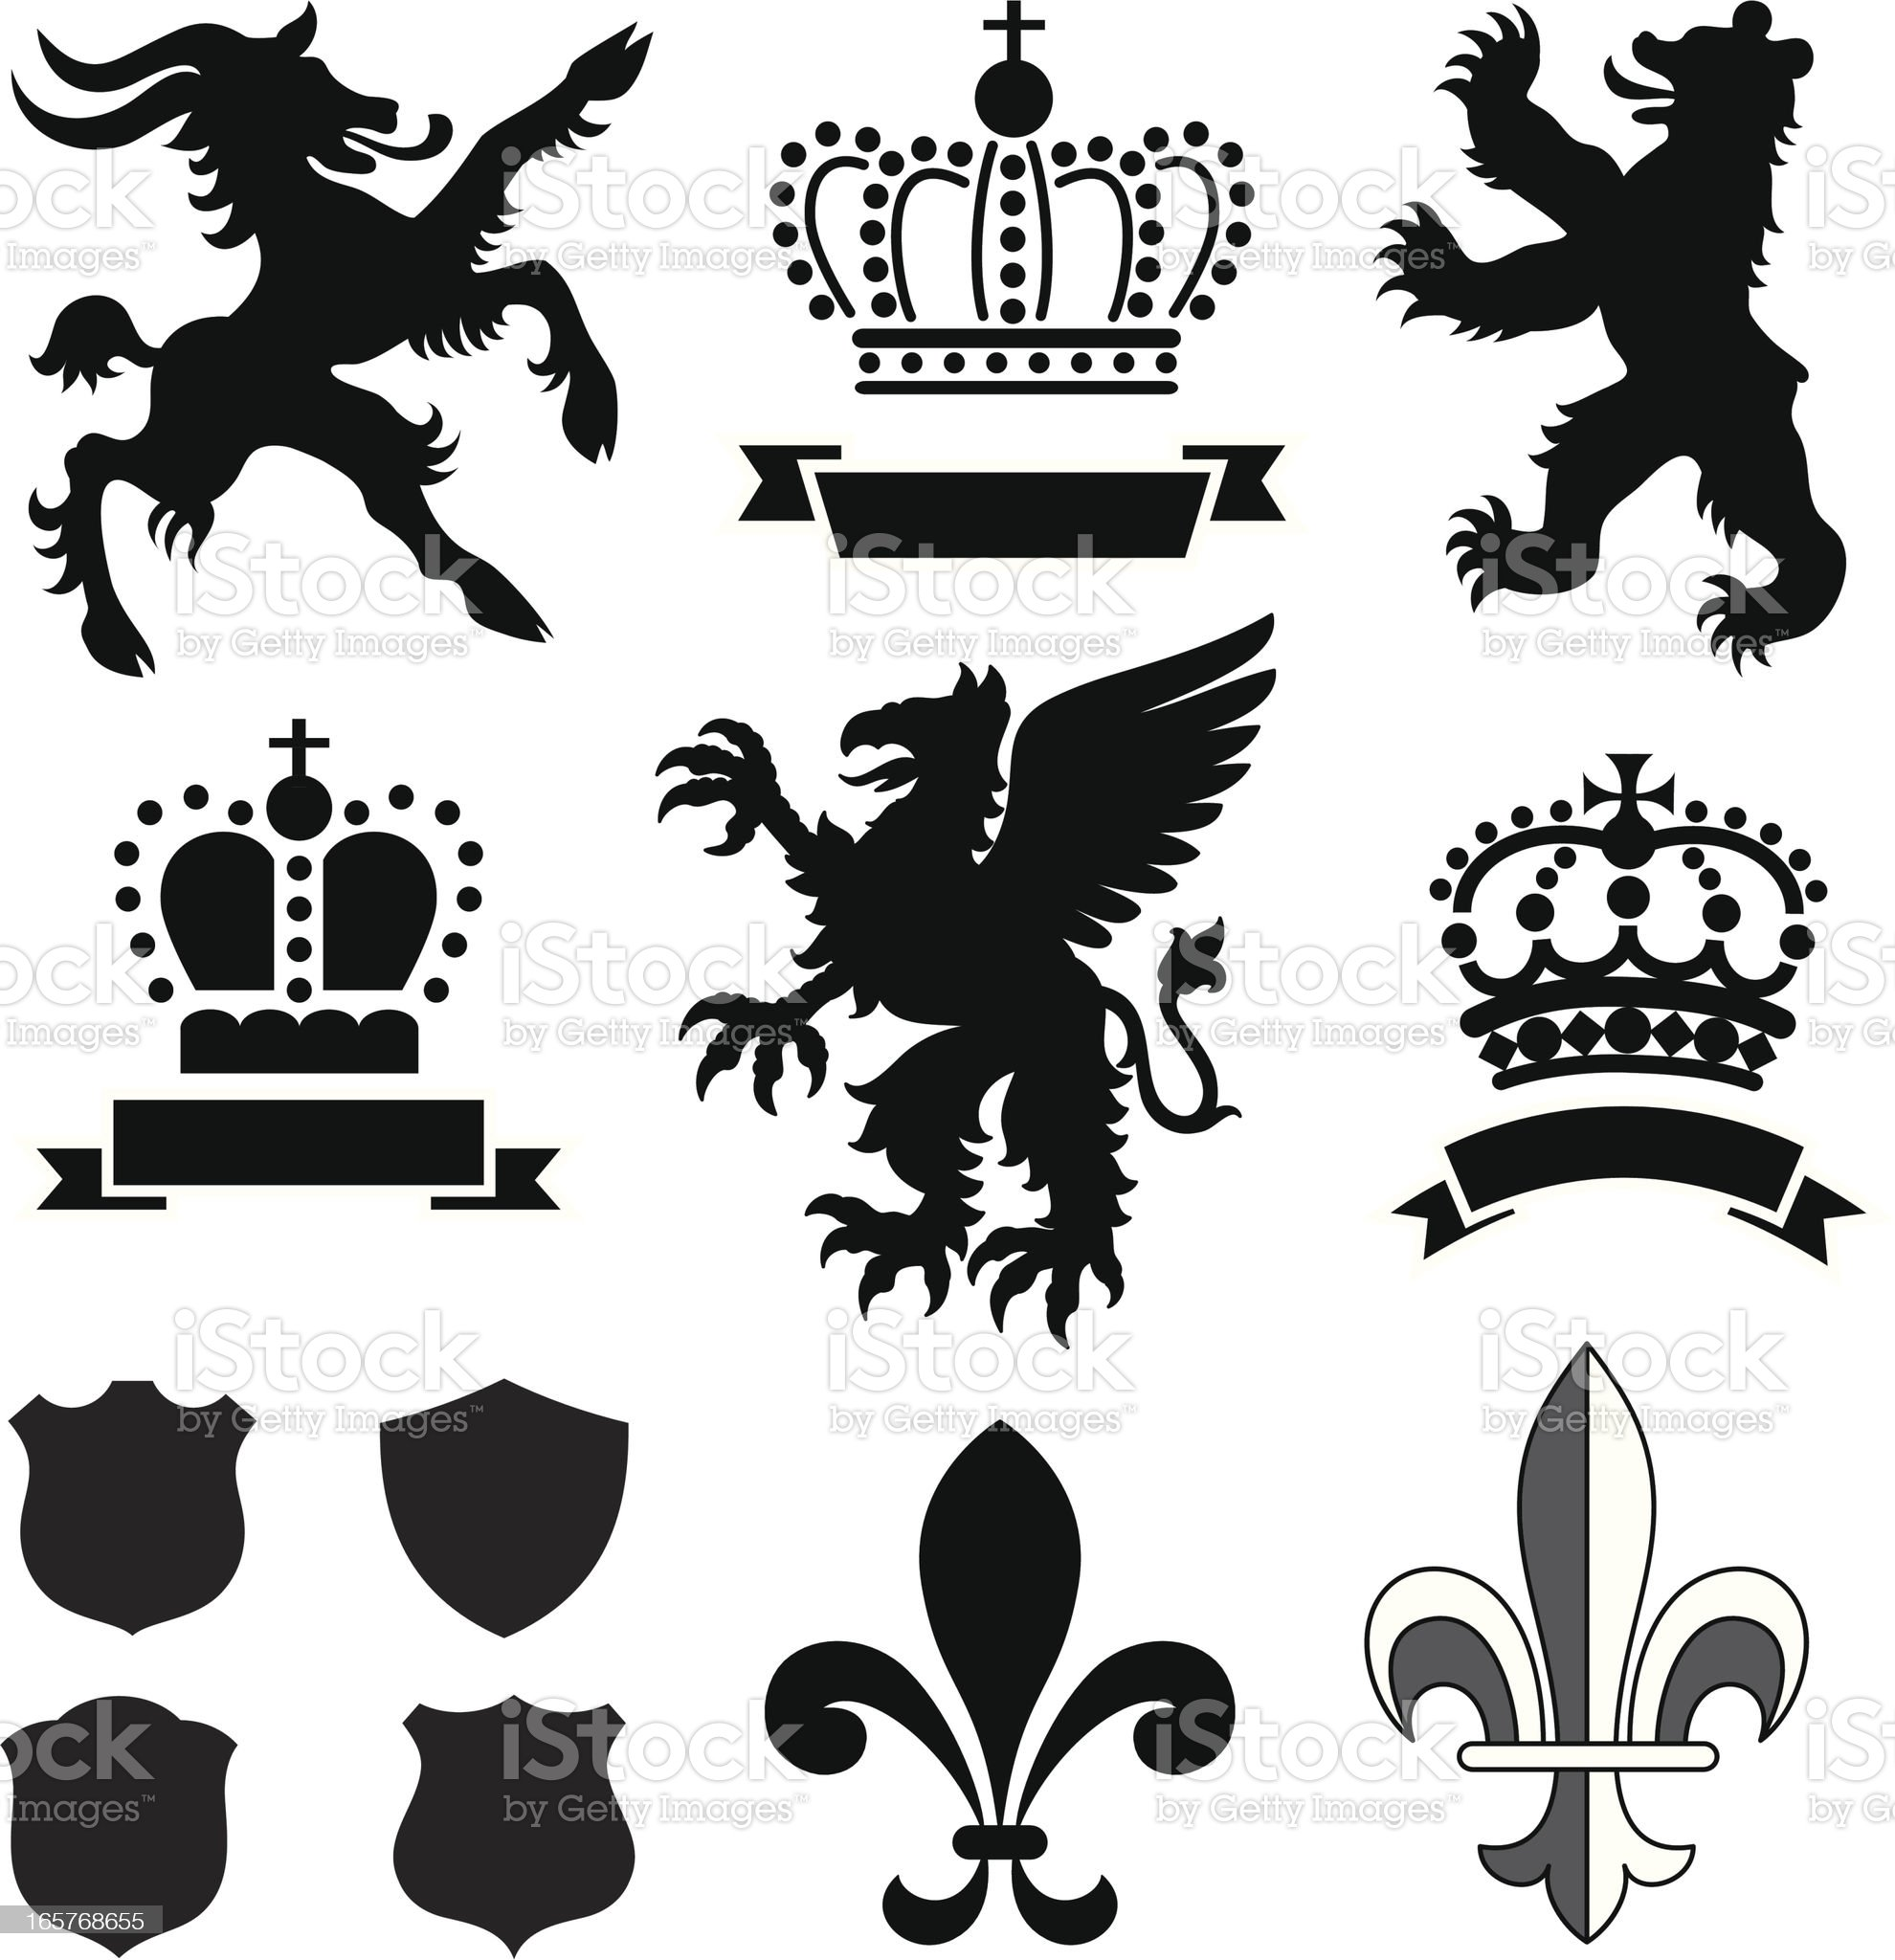 Heraldry Ornaments royalty-free stock vector art